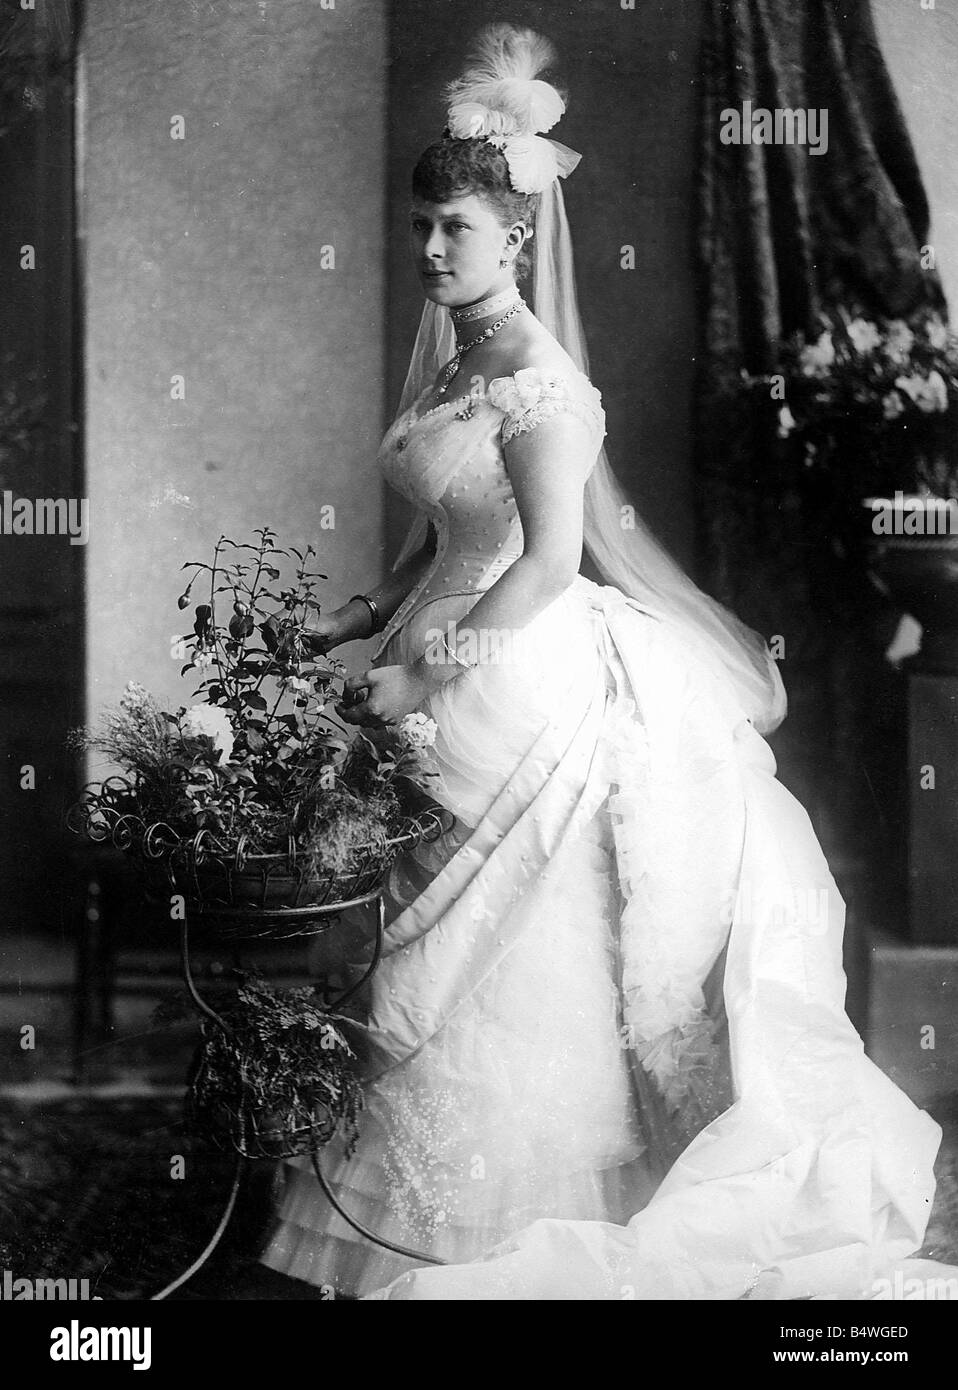 Queen Mary of Teck wearing her wedding dress before her marriage to King George V 1893 - Stock Image